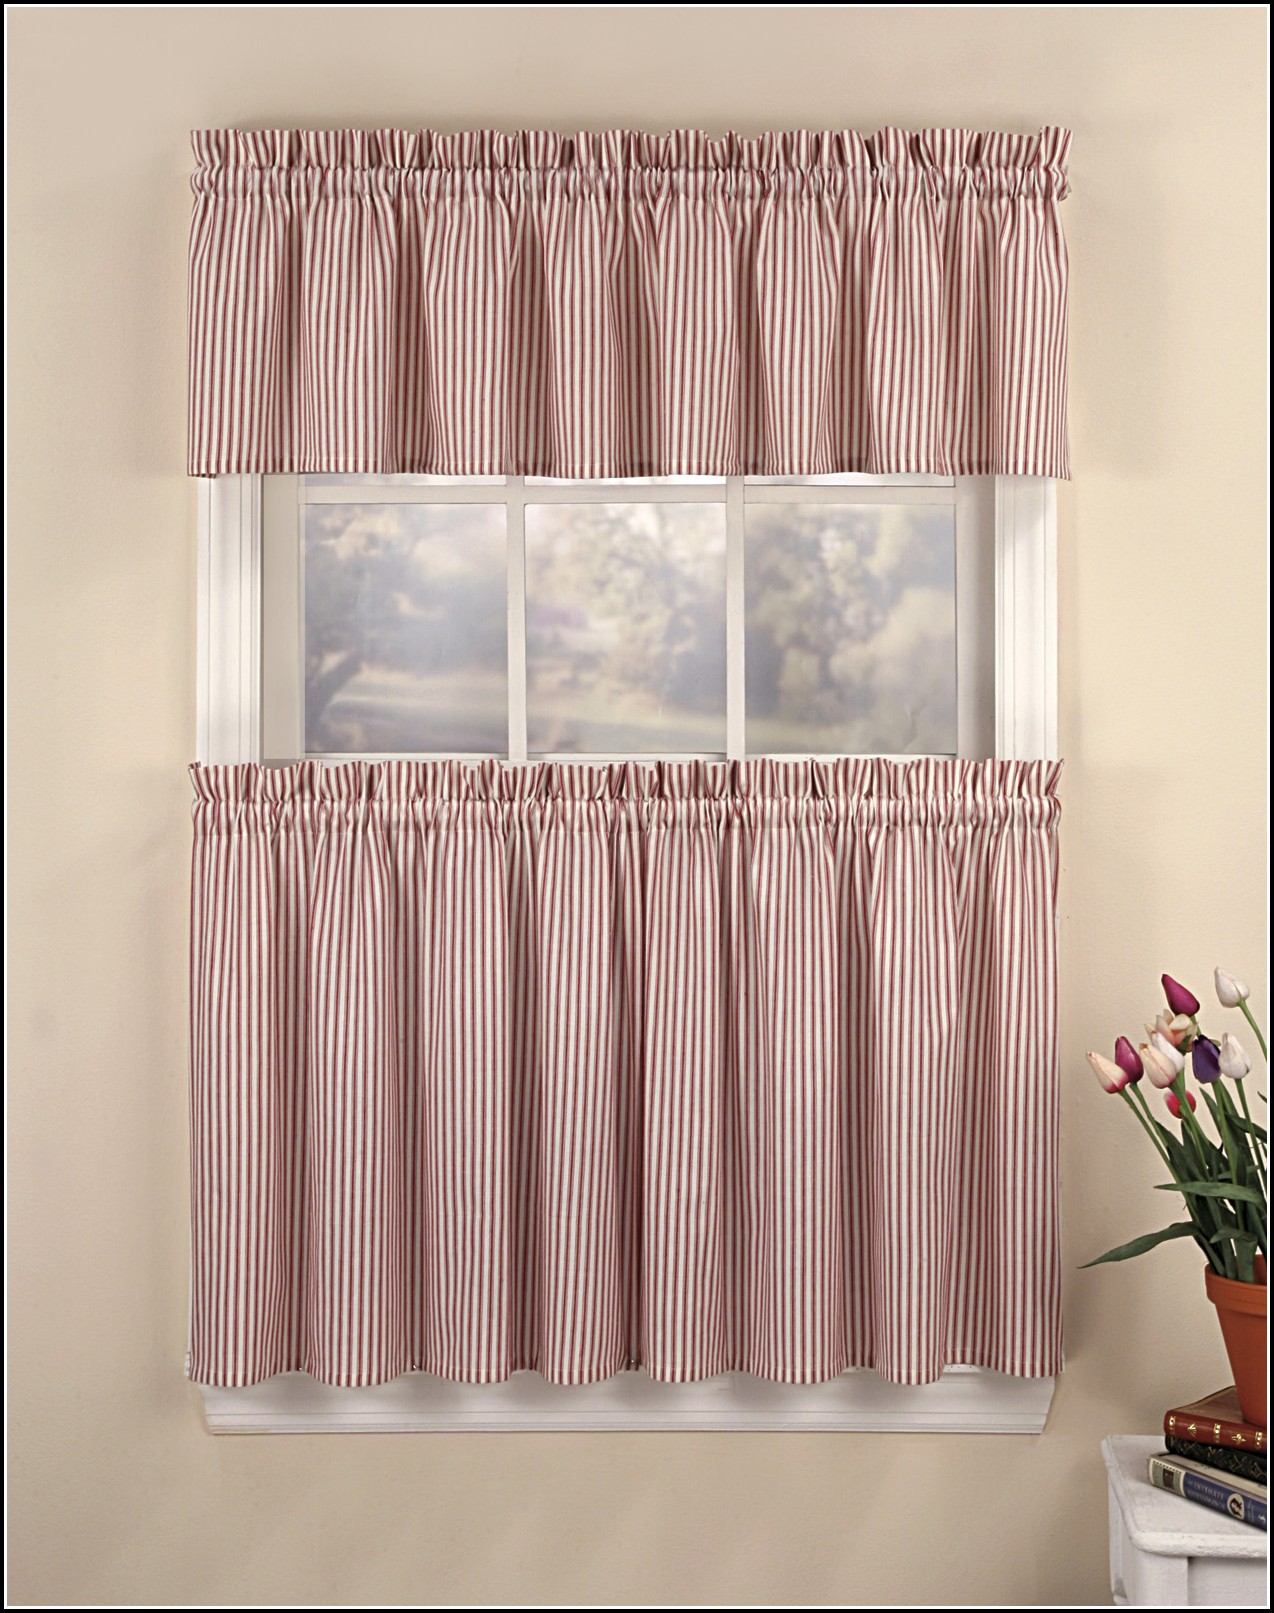 36 Inch Long Kitchen Curtains Curtains Home Design Ideas 2md9wy7poj32267